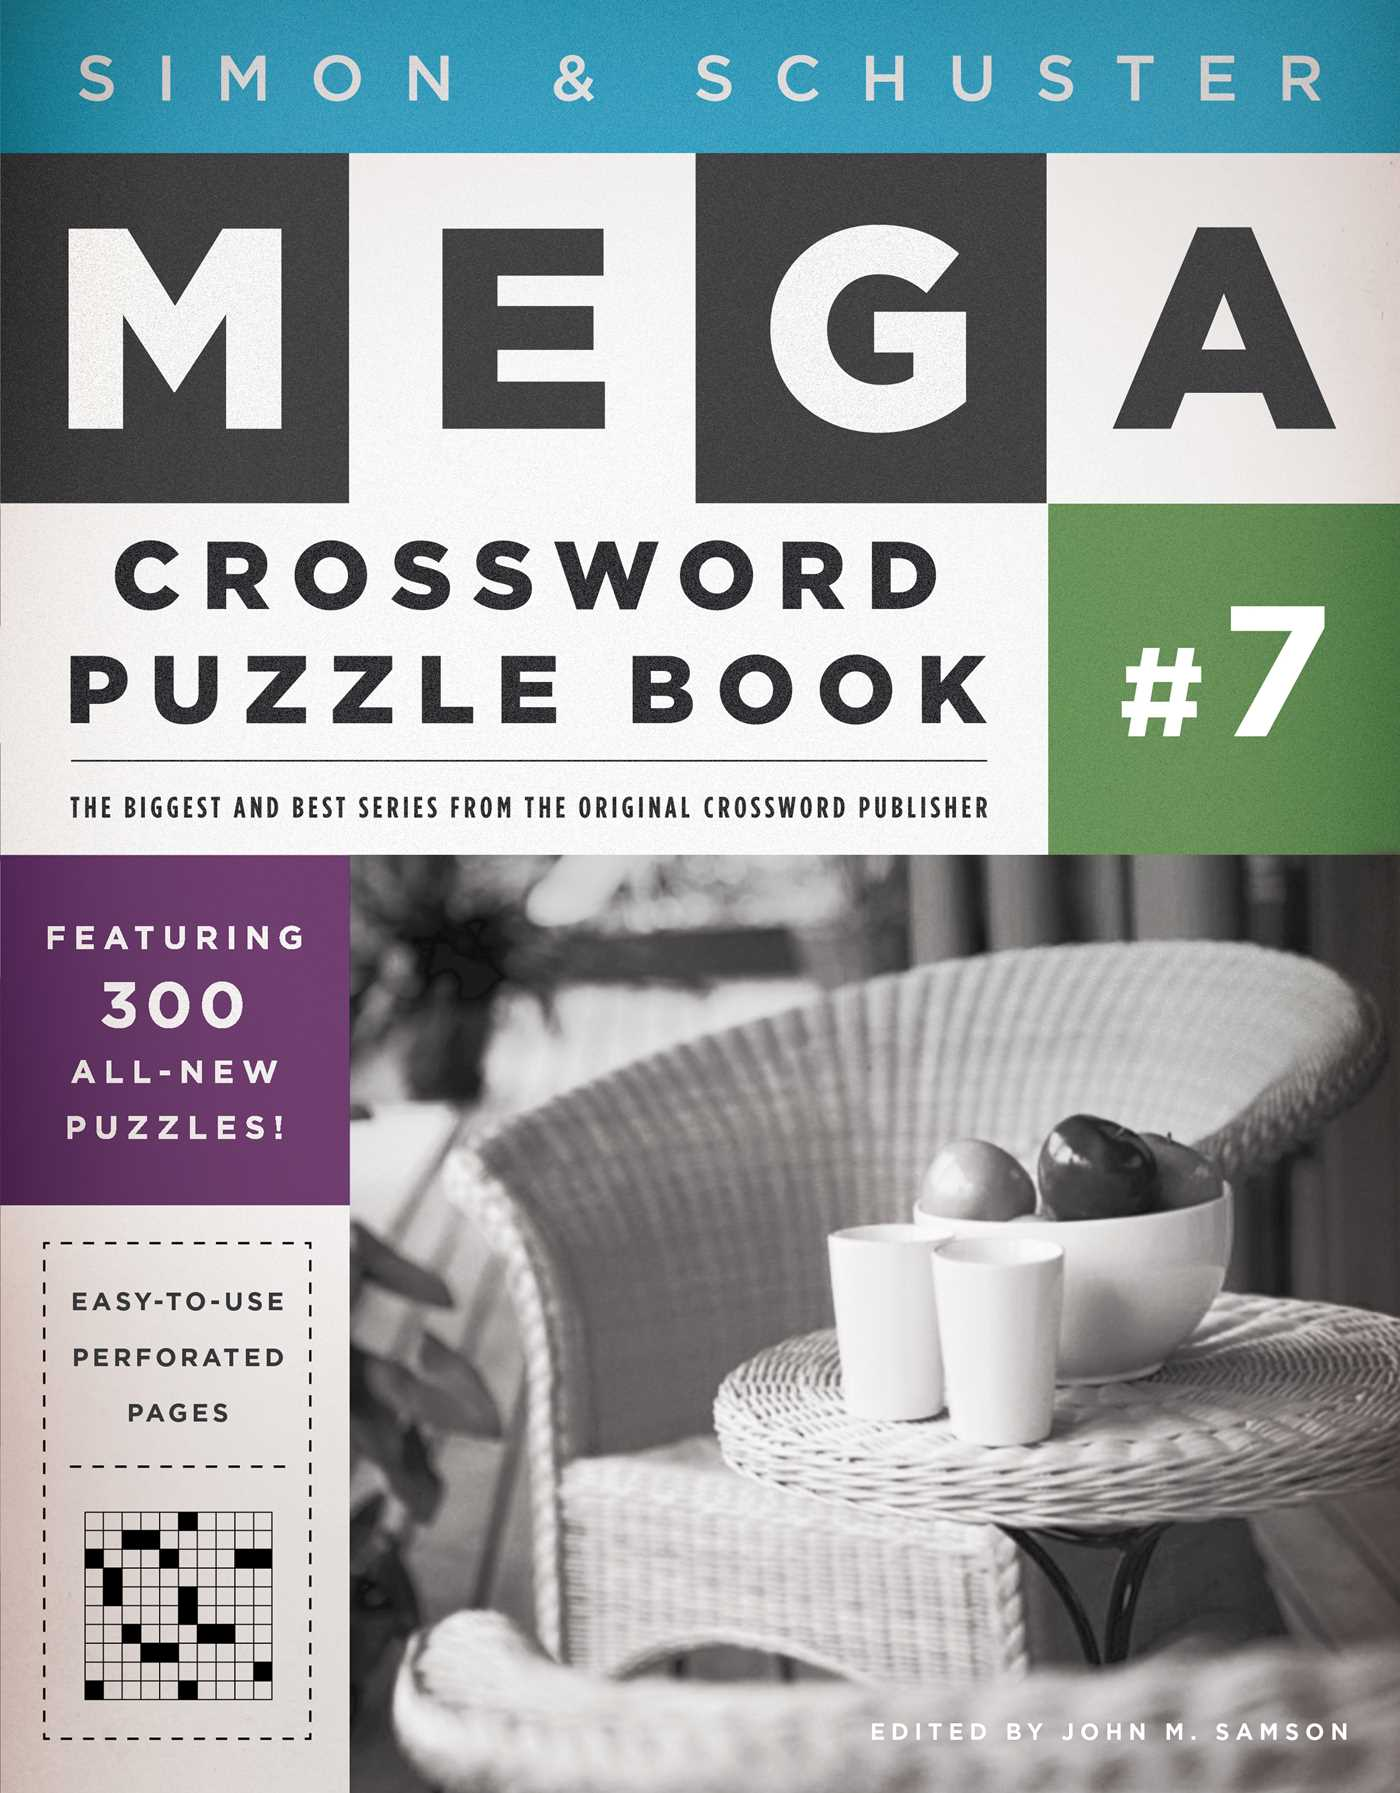 Simon-schuster-mega-crossword-puzzle-book-7-9781439158074_hr